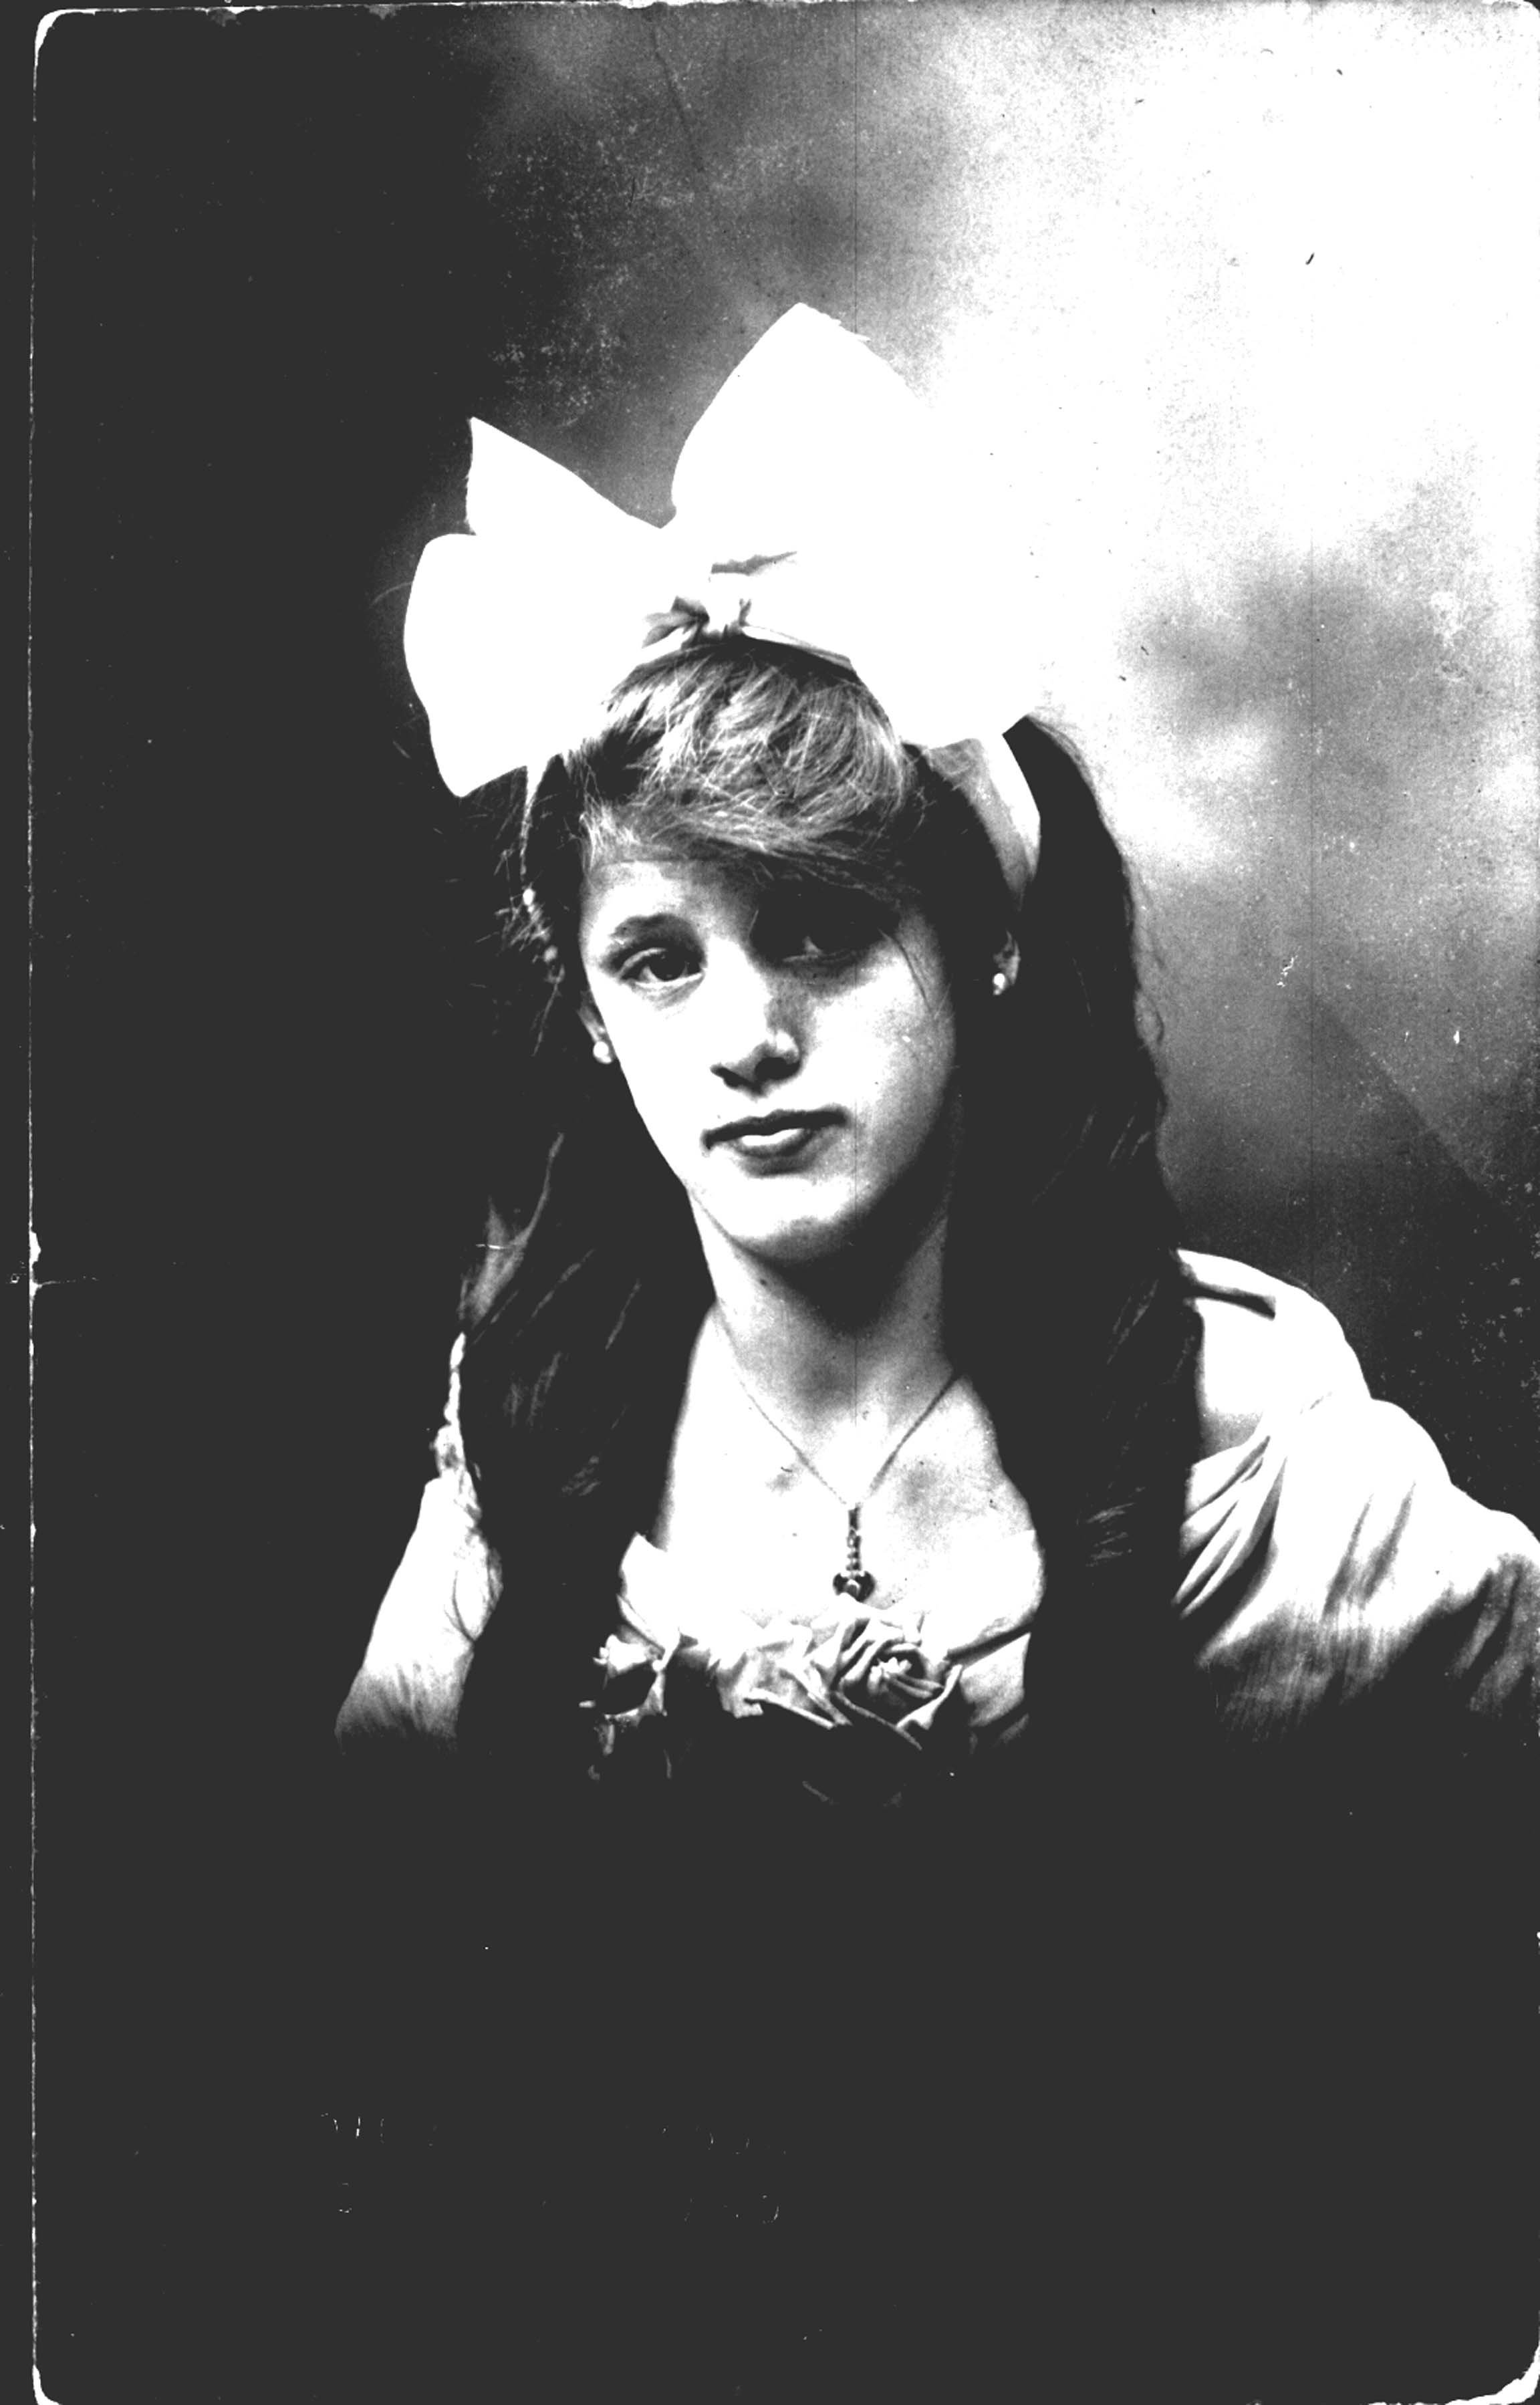 Ruth Hazelwood as a young girl. She served as the youth advisor at Spencer Memorial Methodist church.